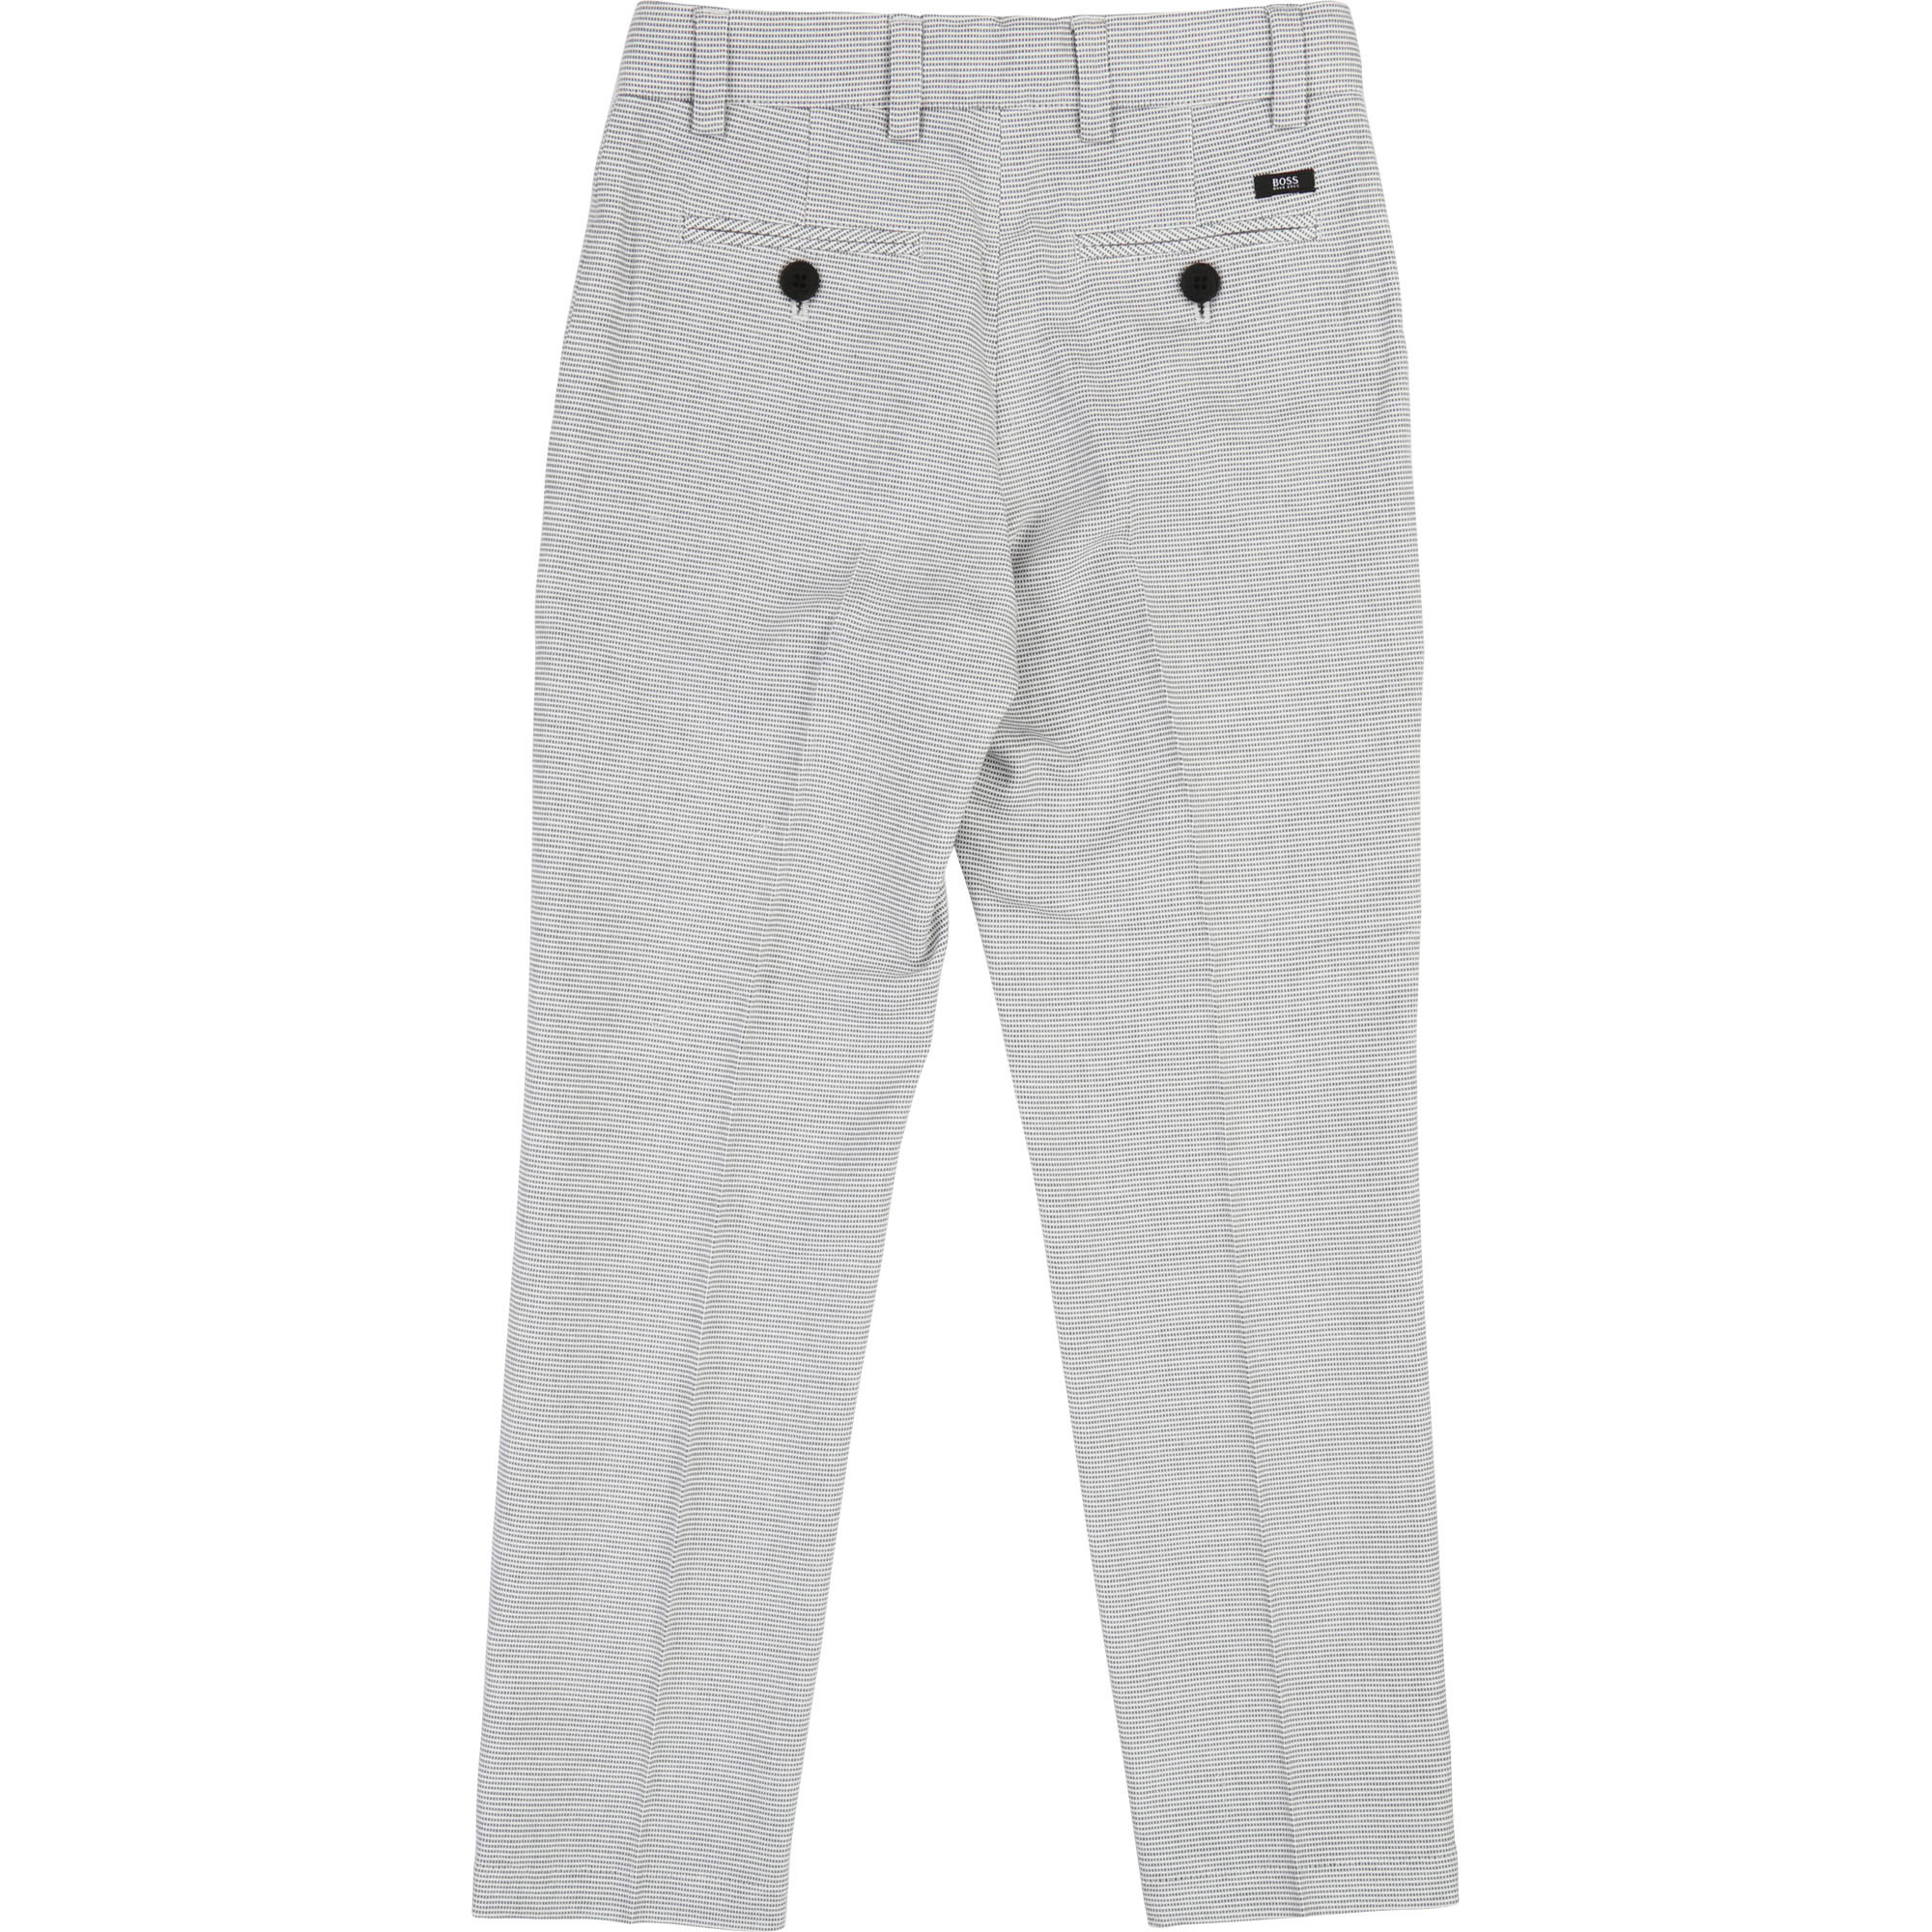 Pantalon de ceremonia BOSS para NIÑO